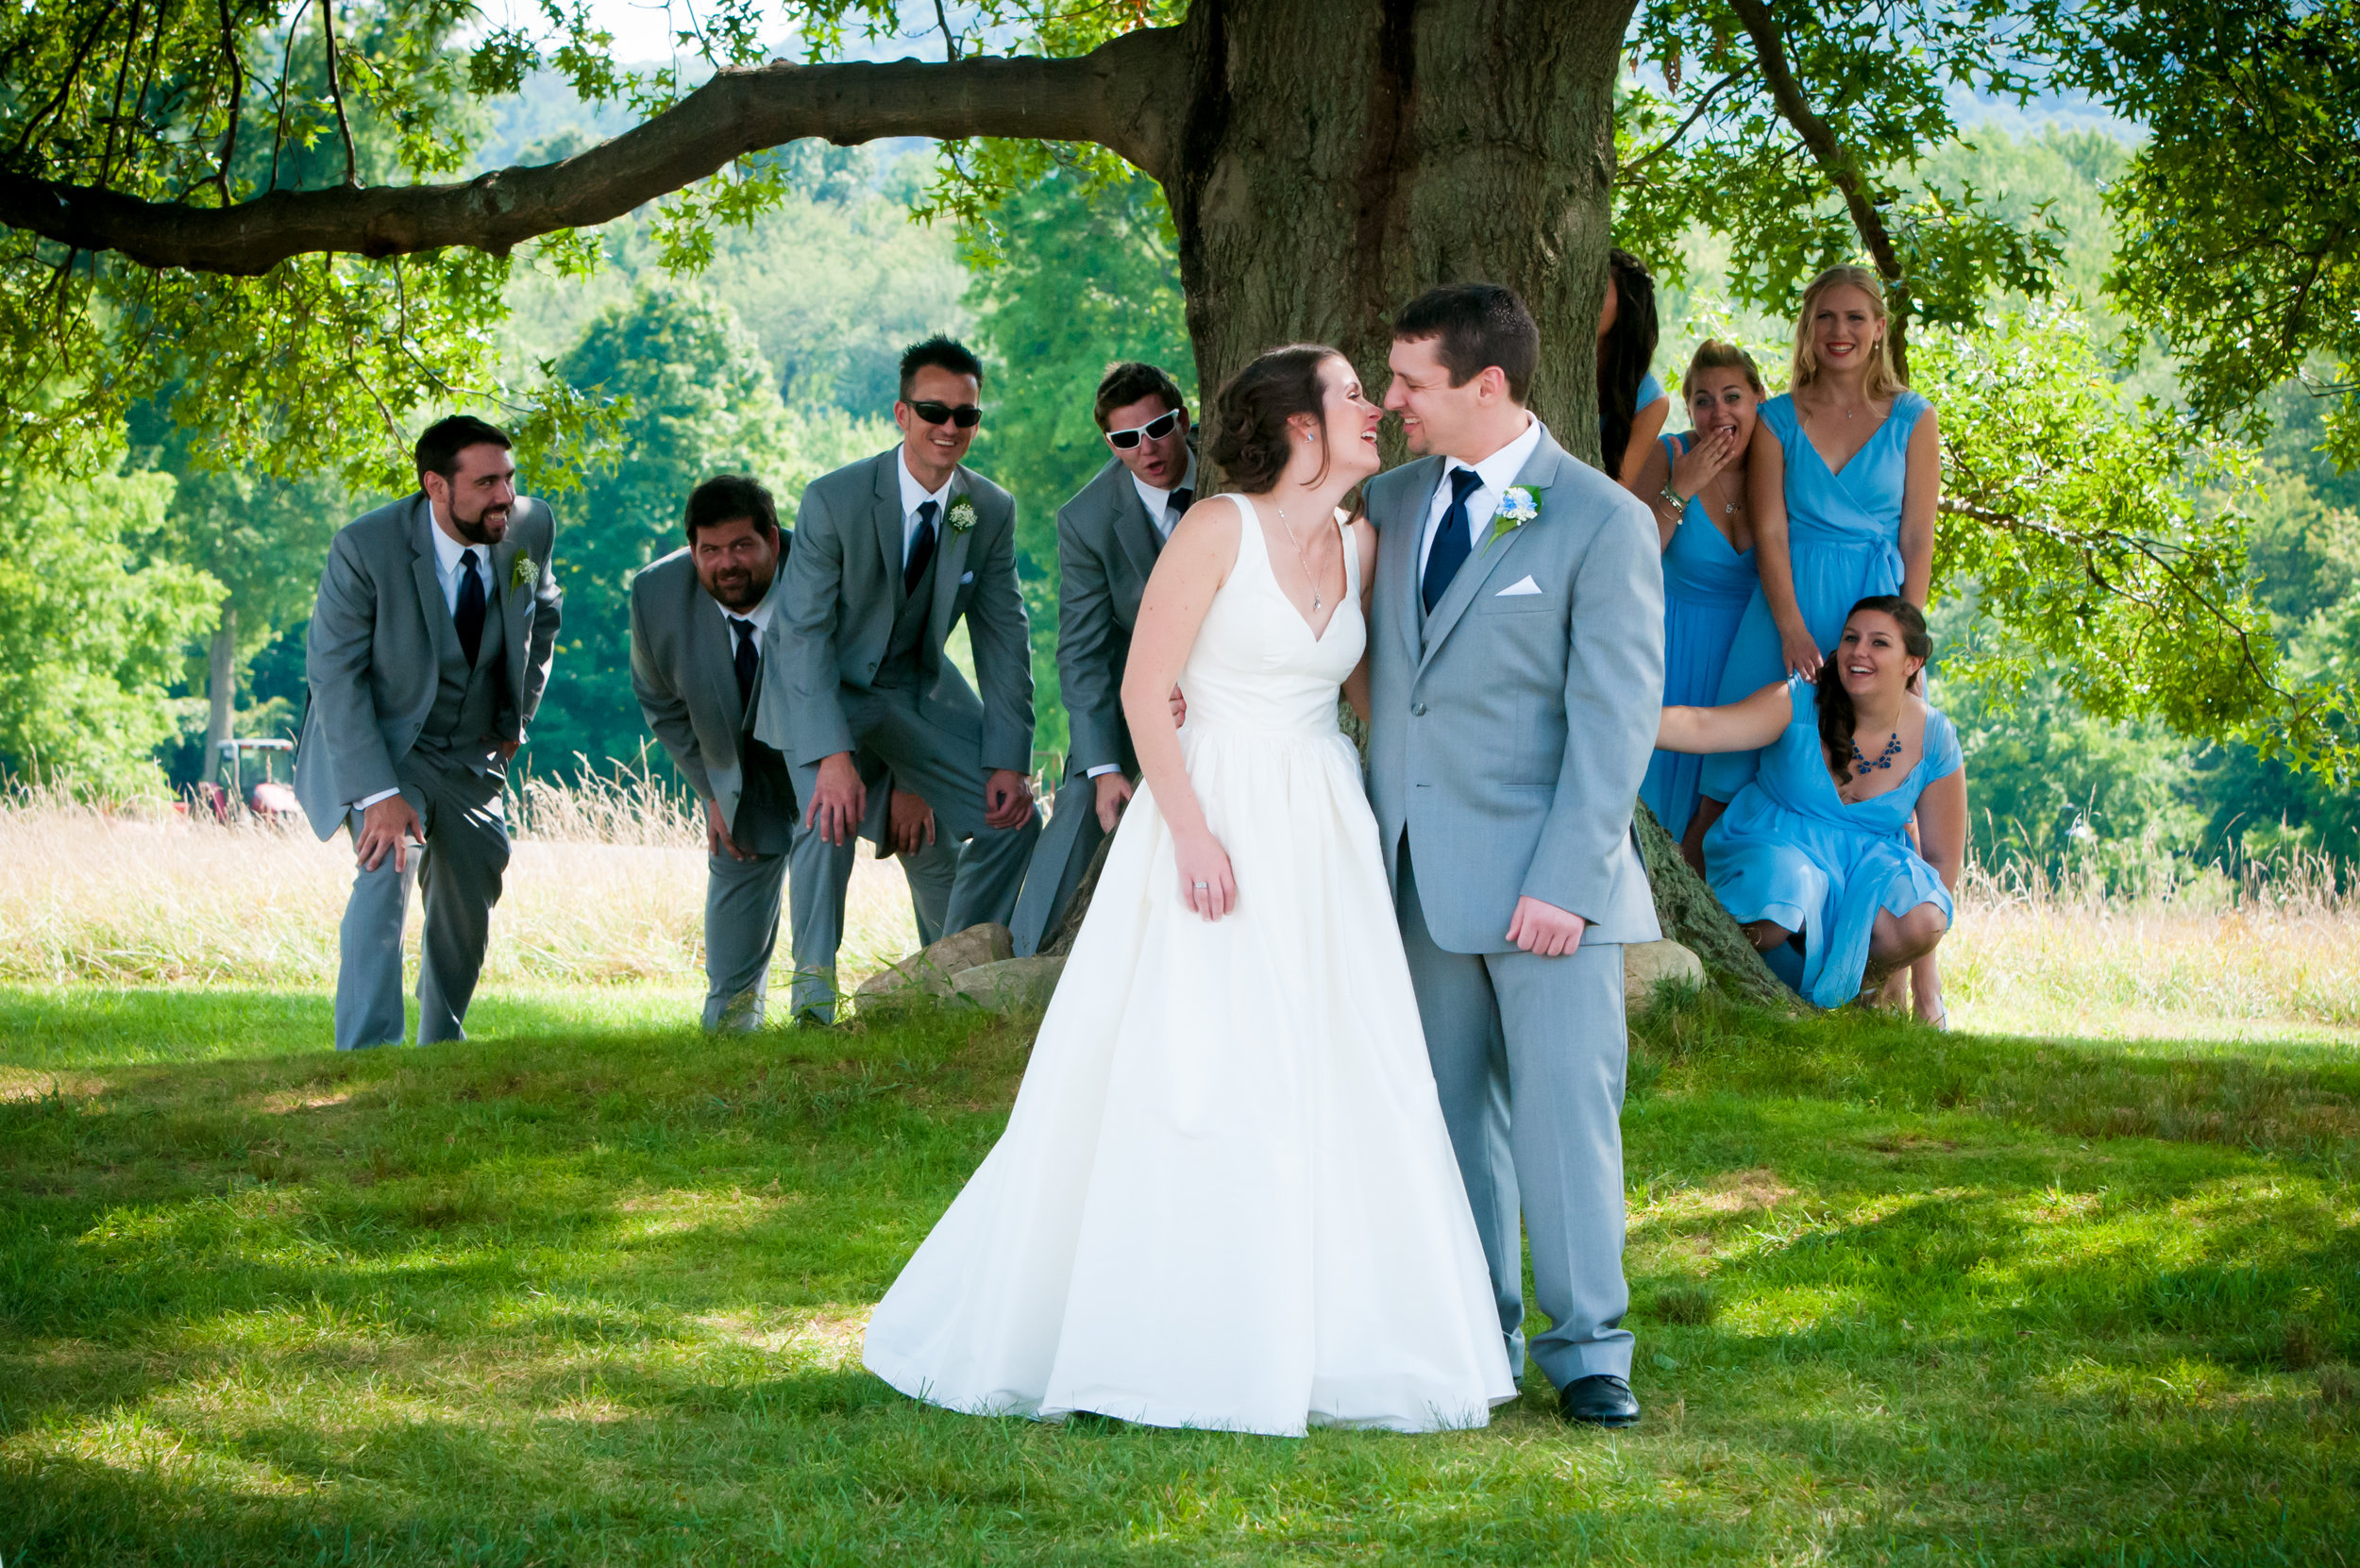 Amanda_and_Jerry_Wedding_CarrieWestonStudios_NY_Photography-1381.jpg